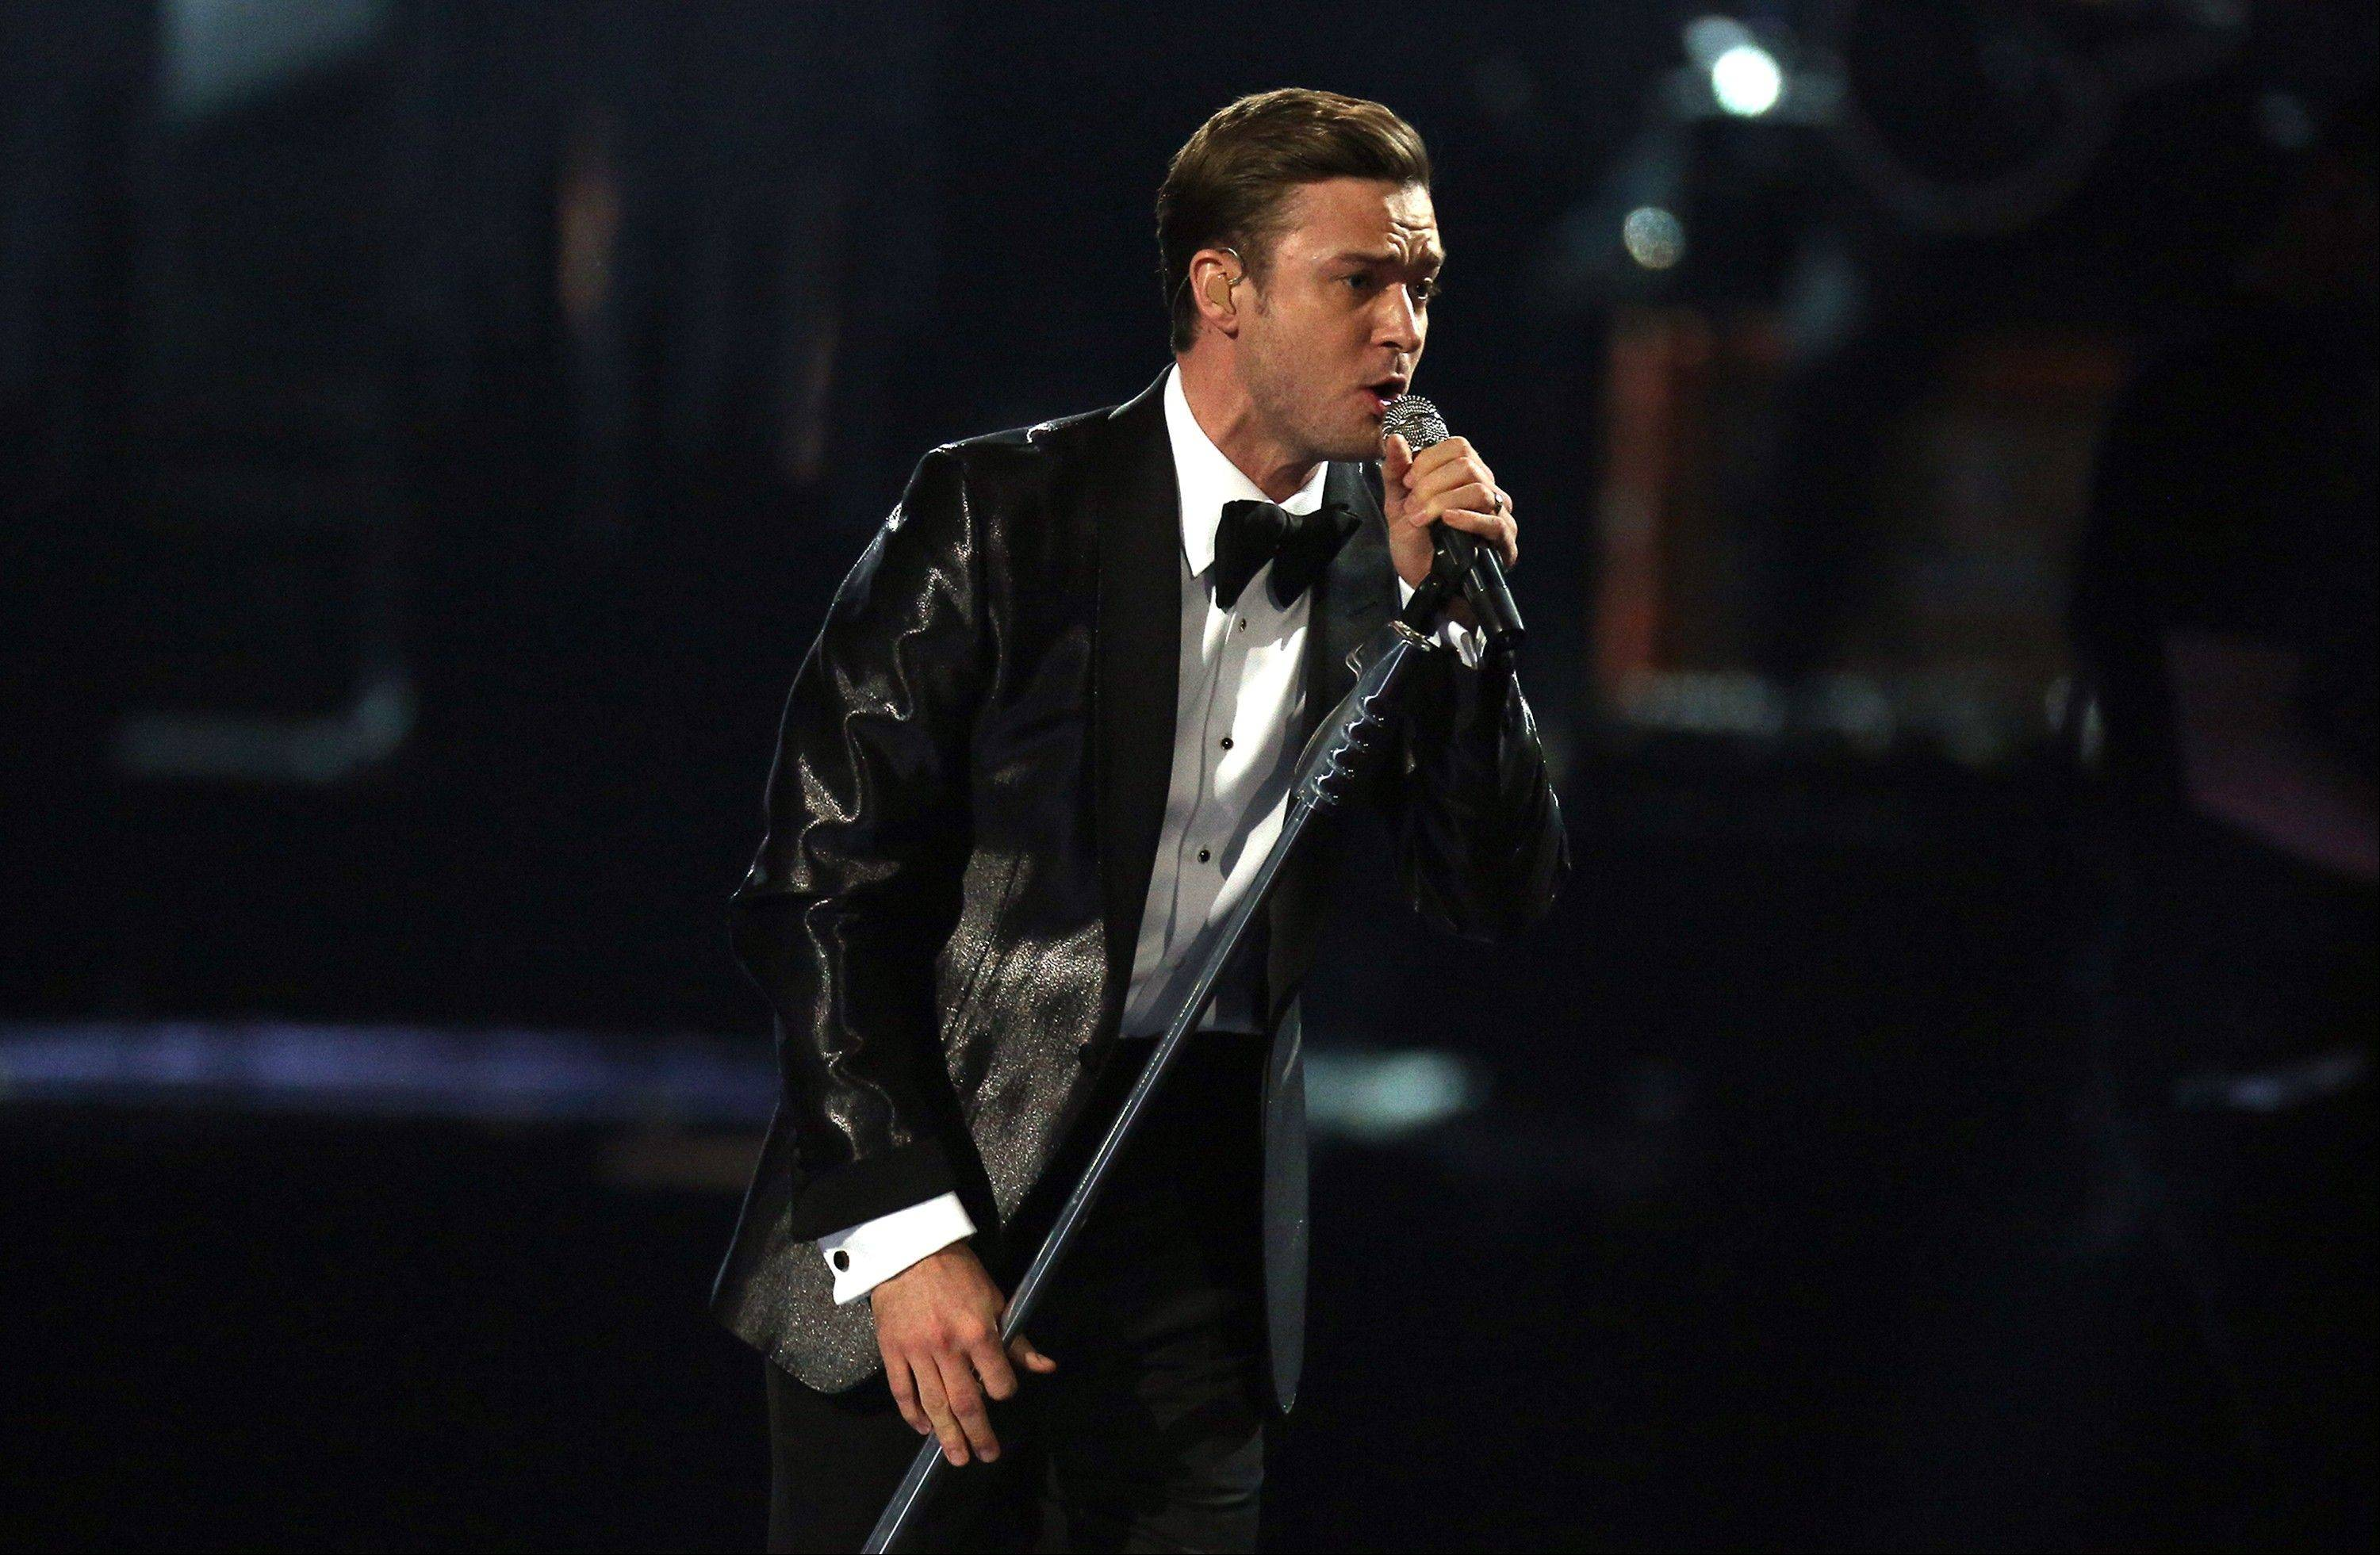 The BRIT Awards 2013 included American performers like Justin Timberlake Wednesday.